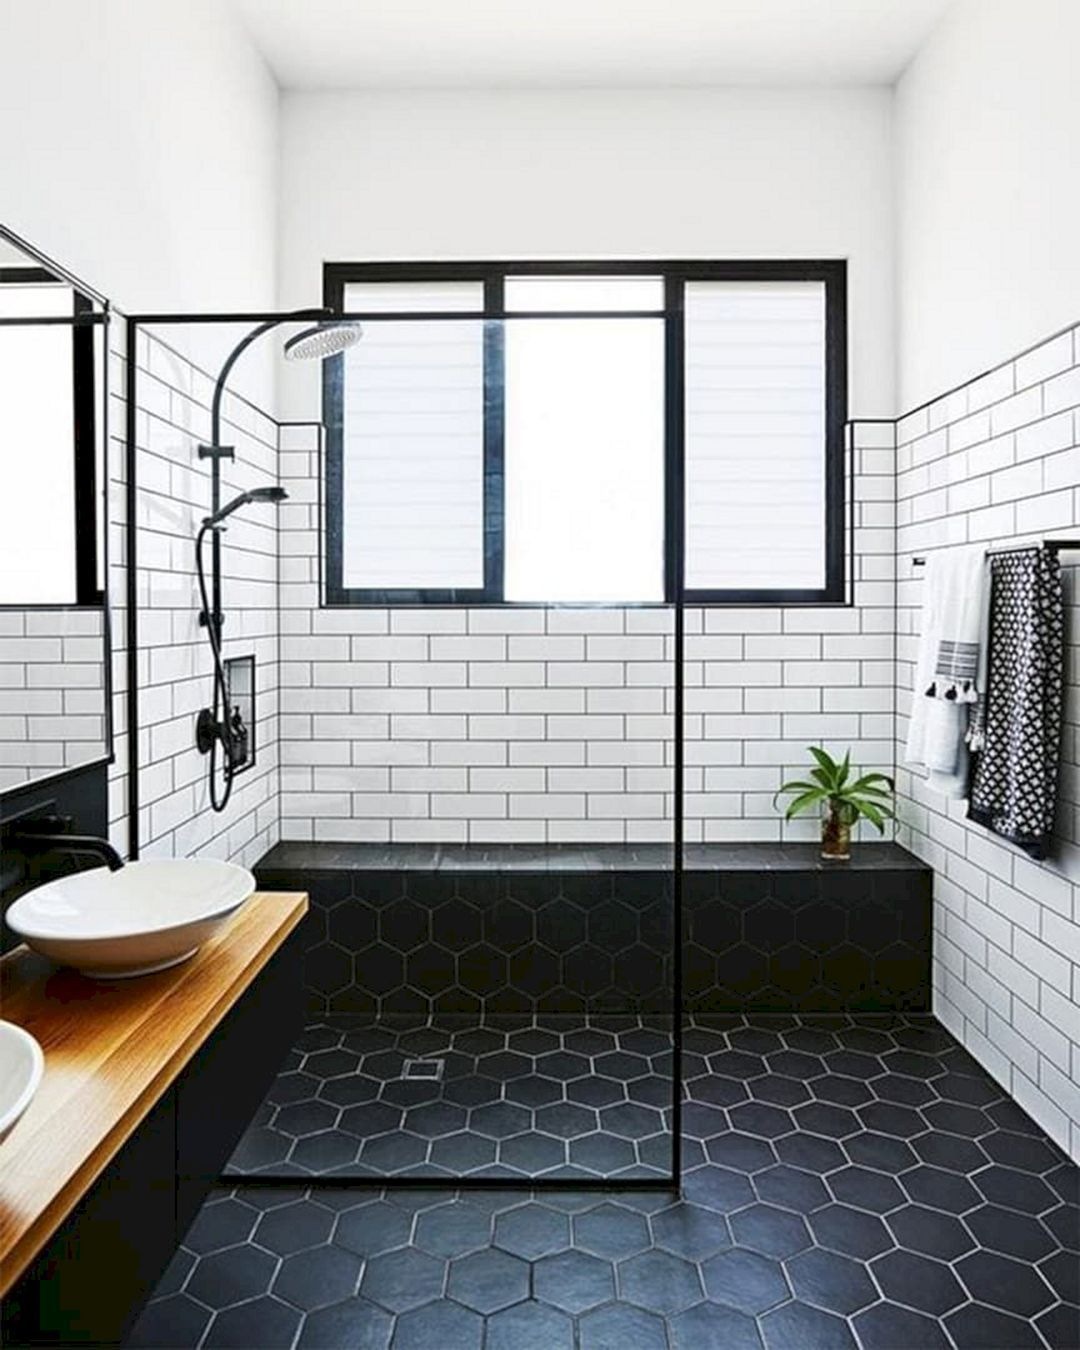 17 Wonderful Bathroom Design With Small Tile Ideas To Inspire You Diy Bathroom Makeover Small Bathroom Makeover Master Bathroom Makeover